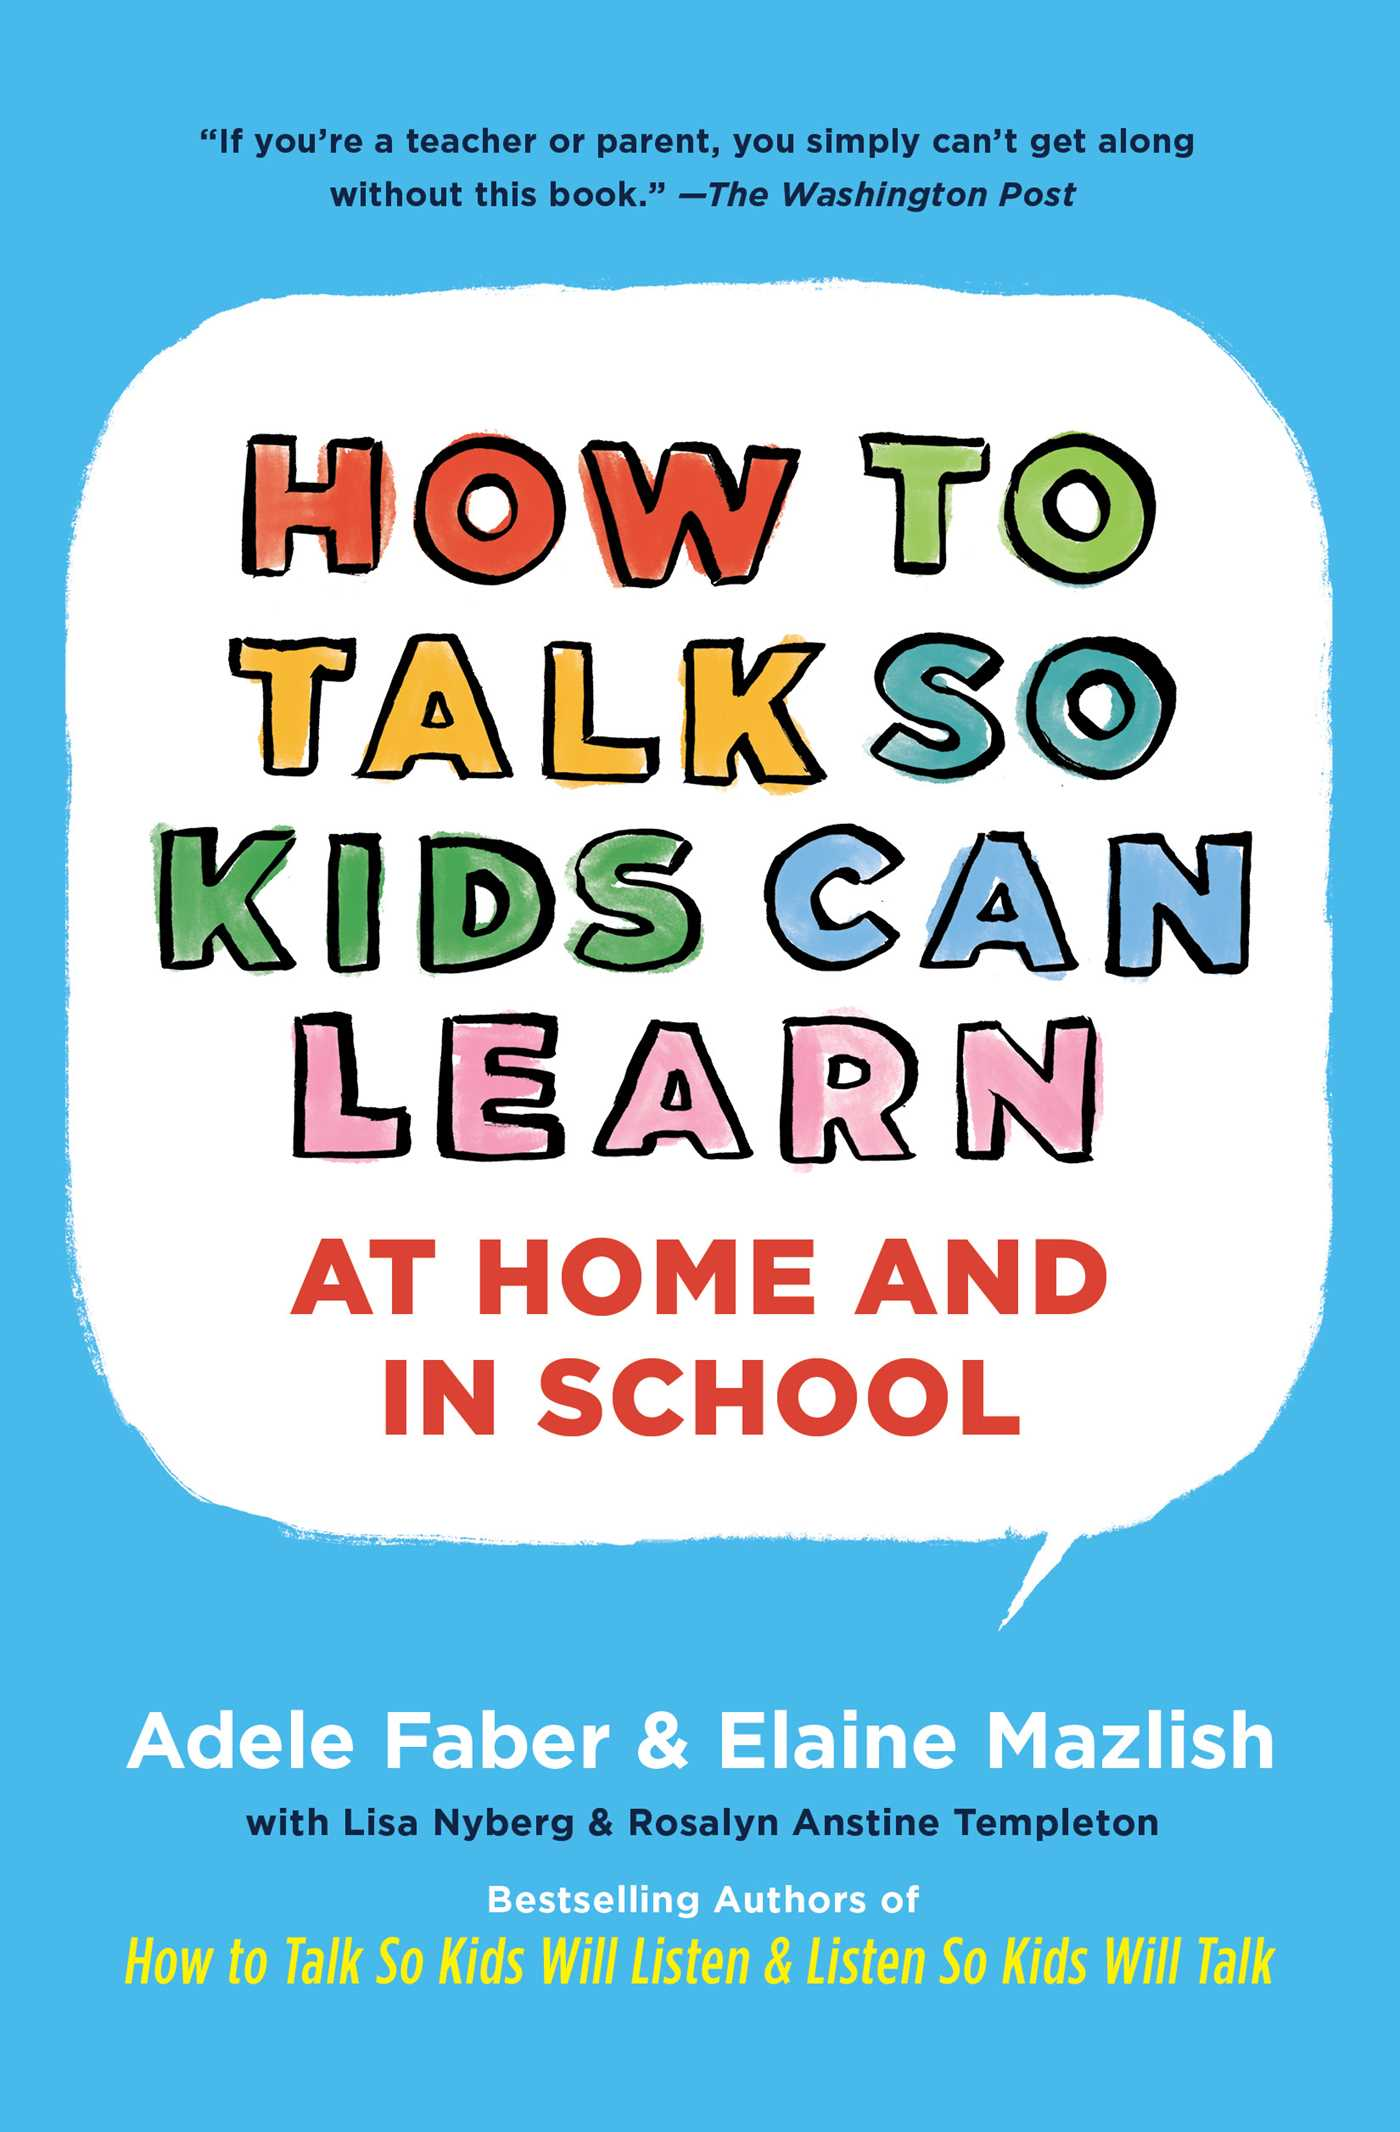 How To Talk So Kids Can Learn Book By Adele Faber Elaine Mazlish Parallel Circuit For Science School Home Cover Image